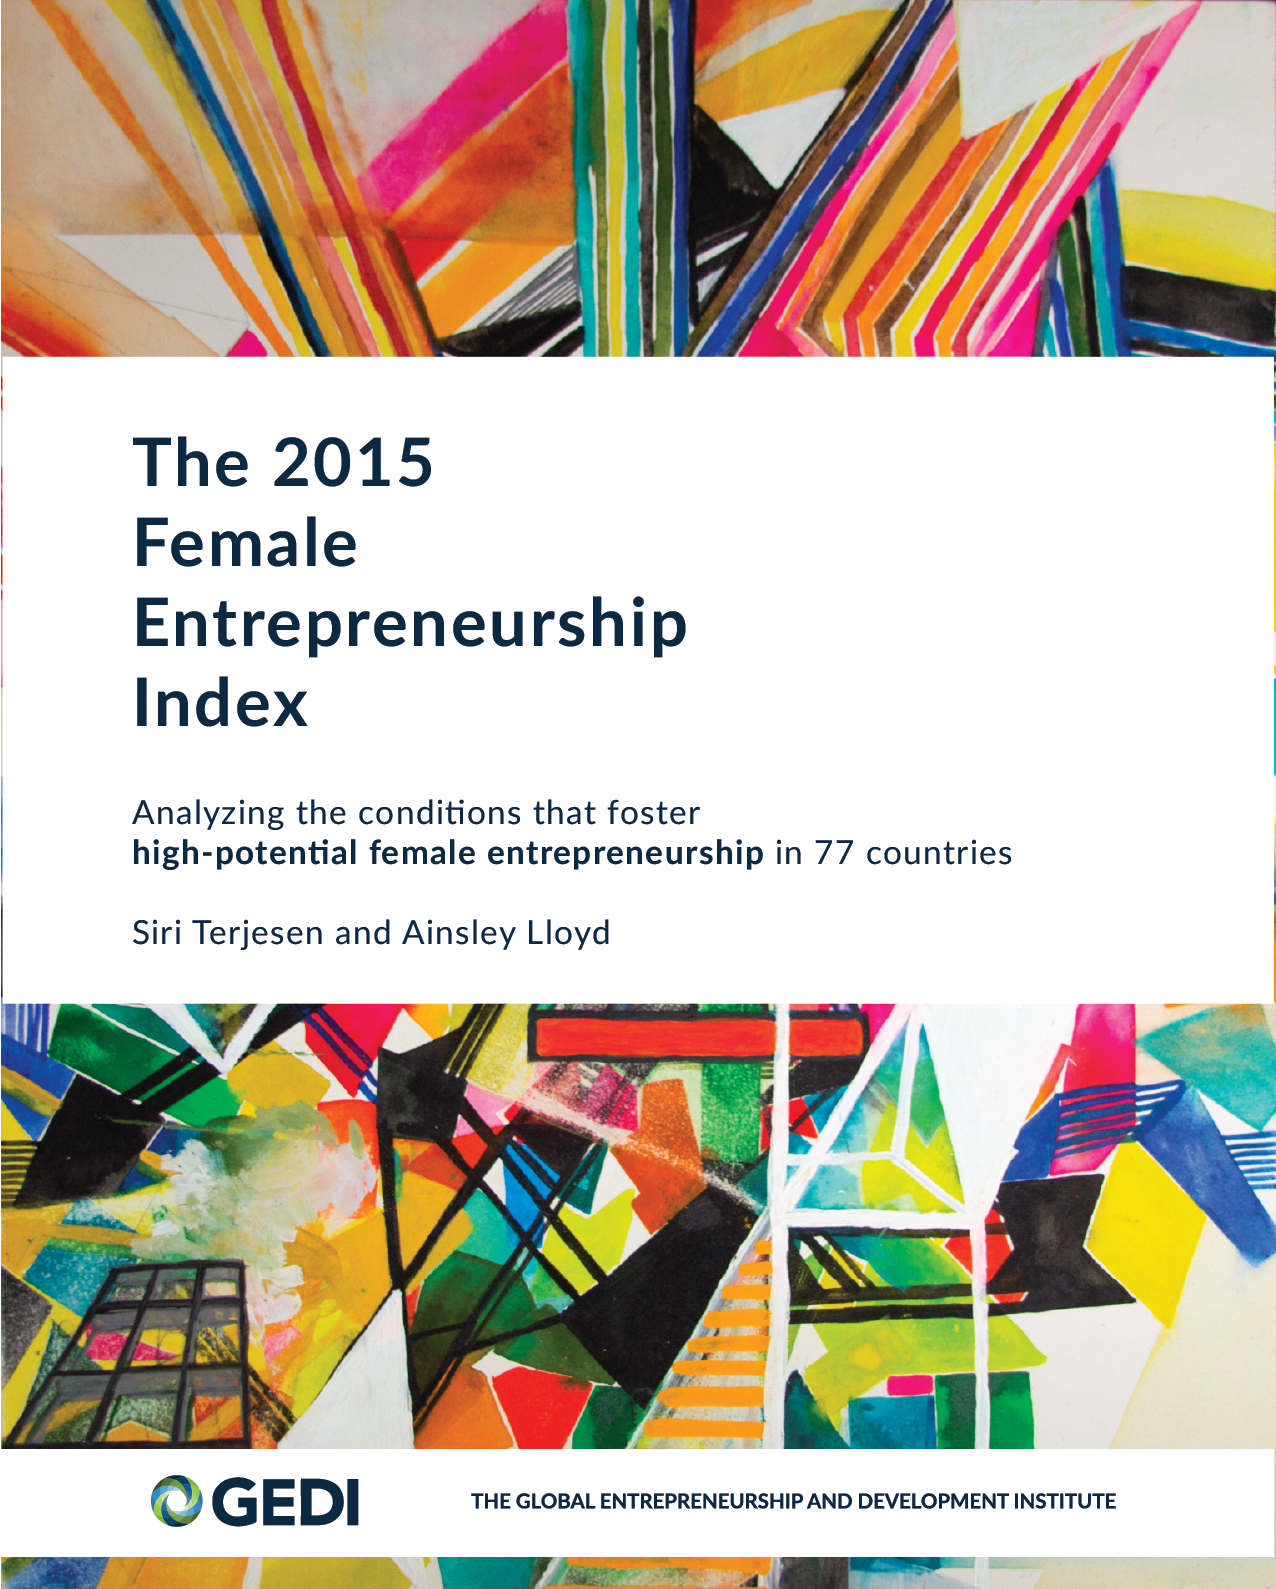 2015 Female Entrepreneurship Index